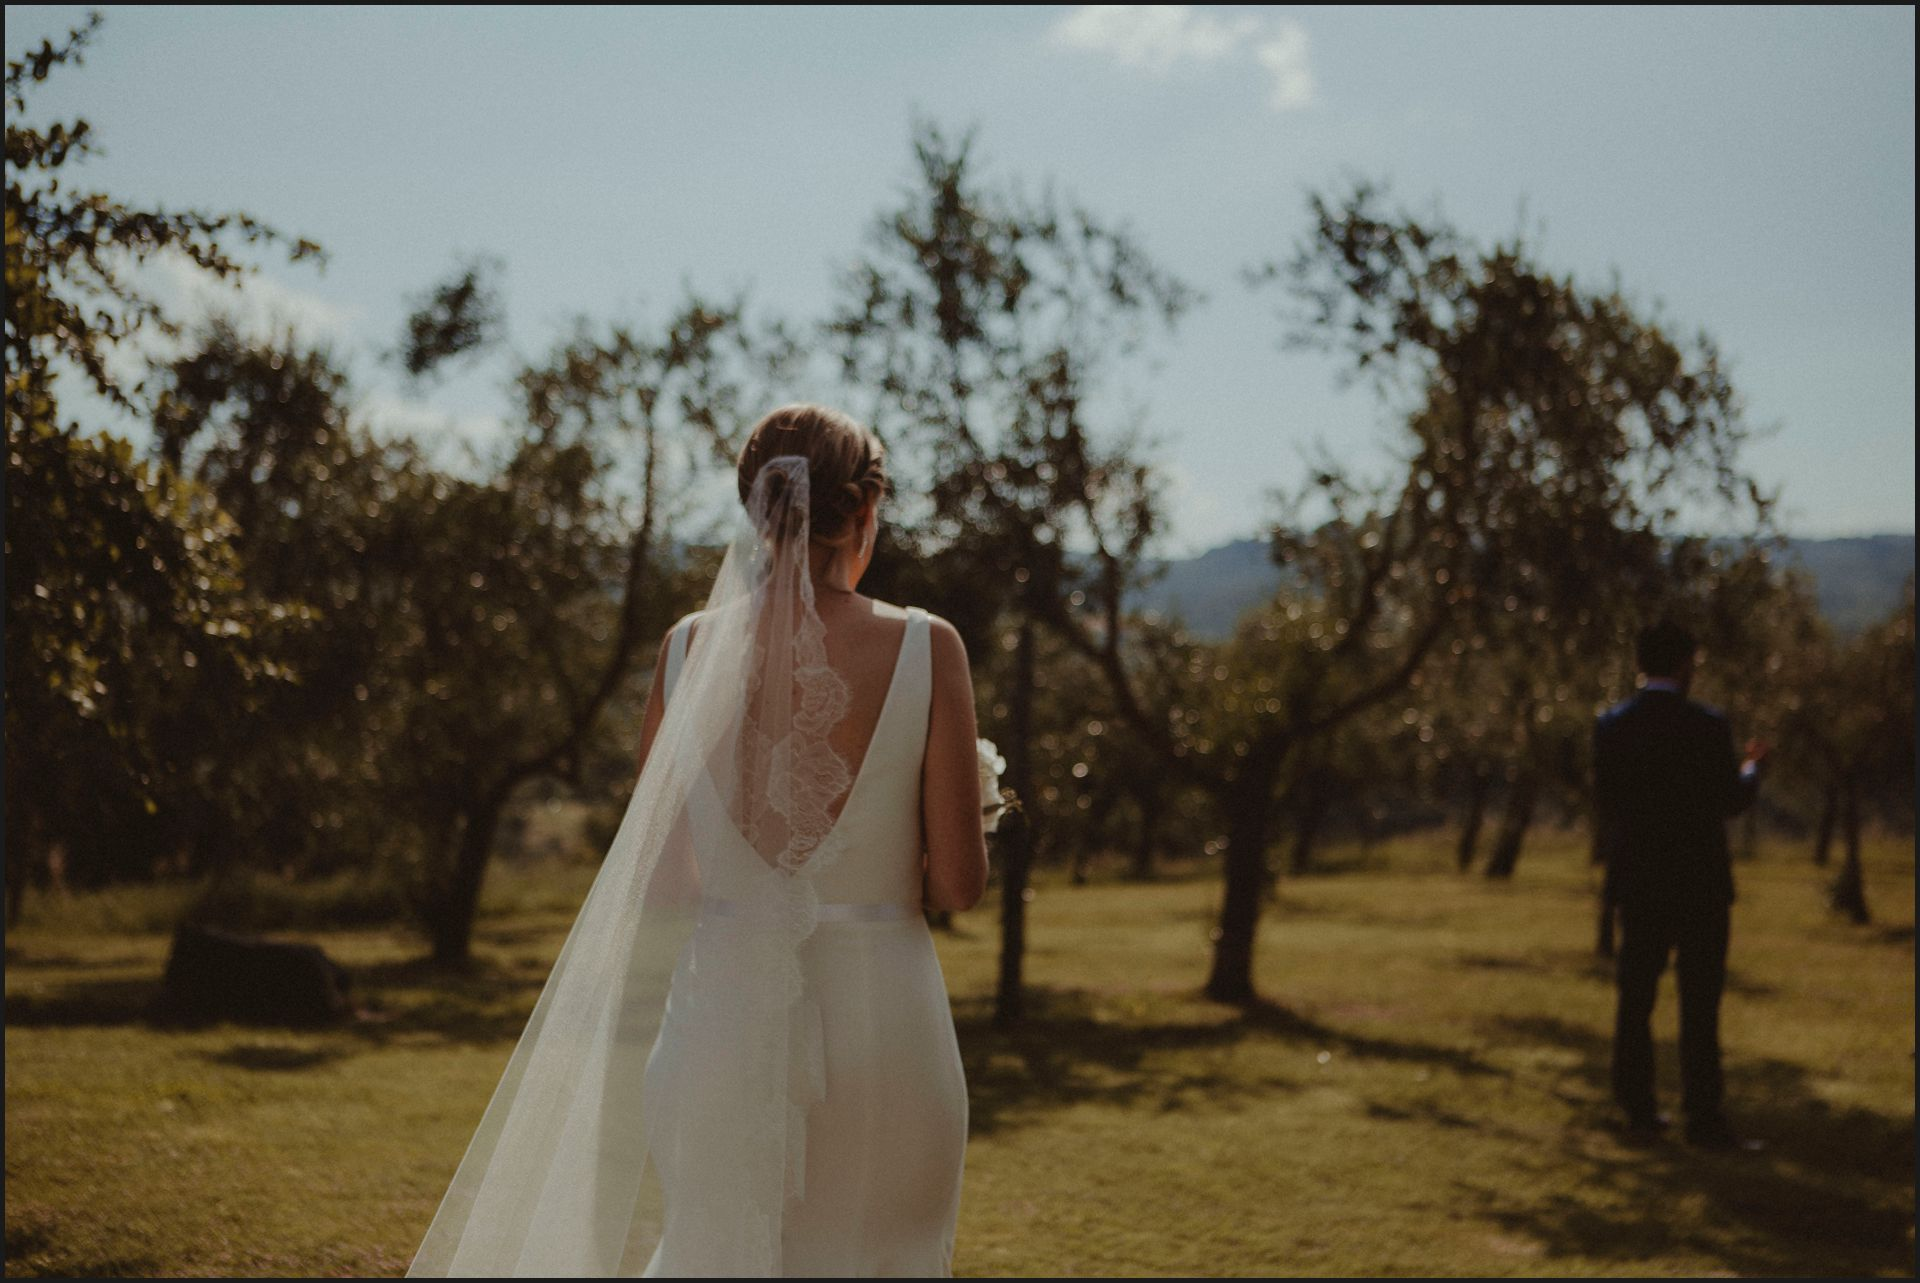 tenuta di canonica, umbria, wedding, first look, bride, groom